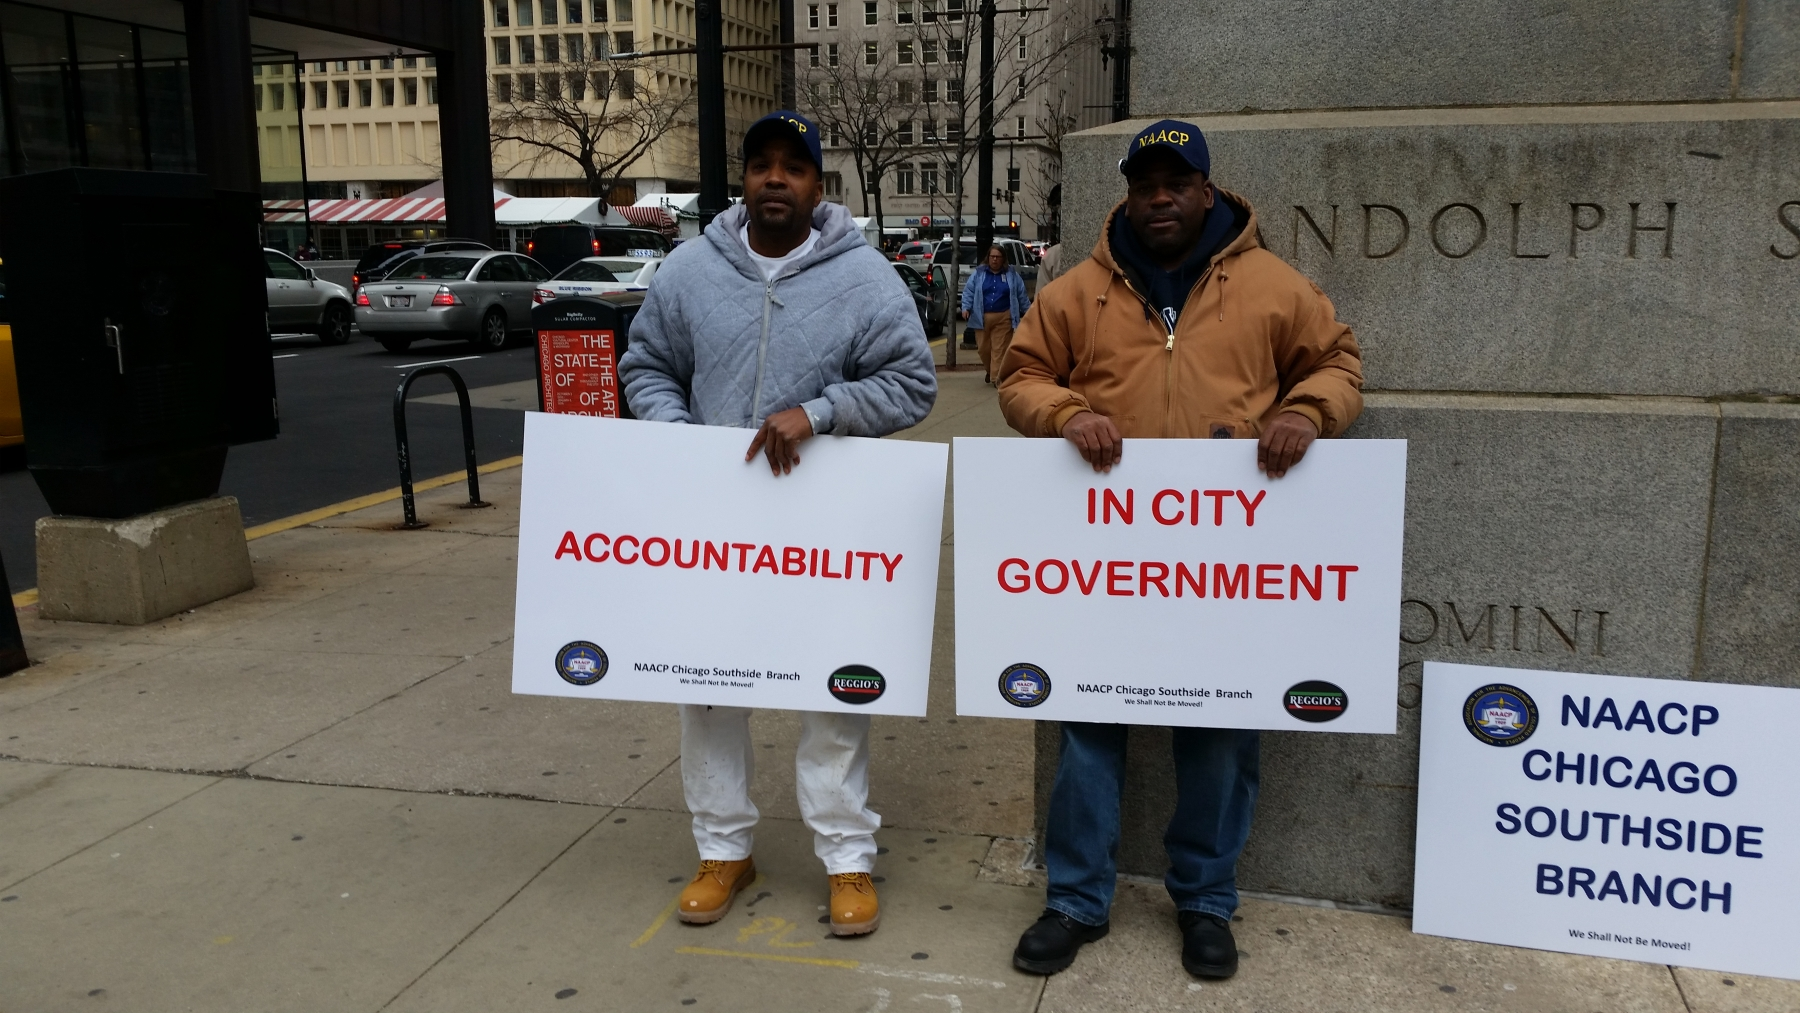 accountability-in-city-govt